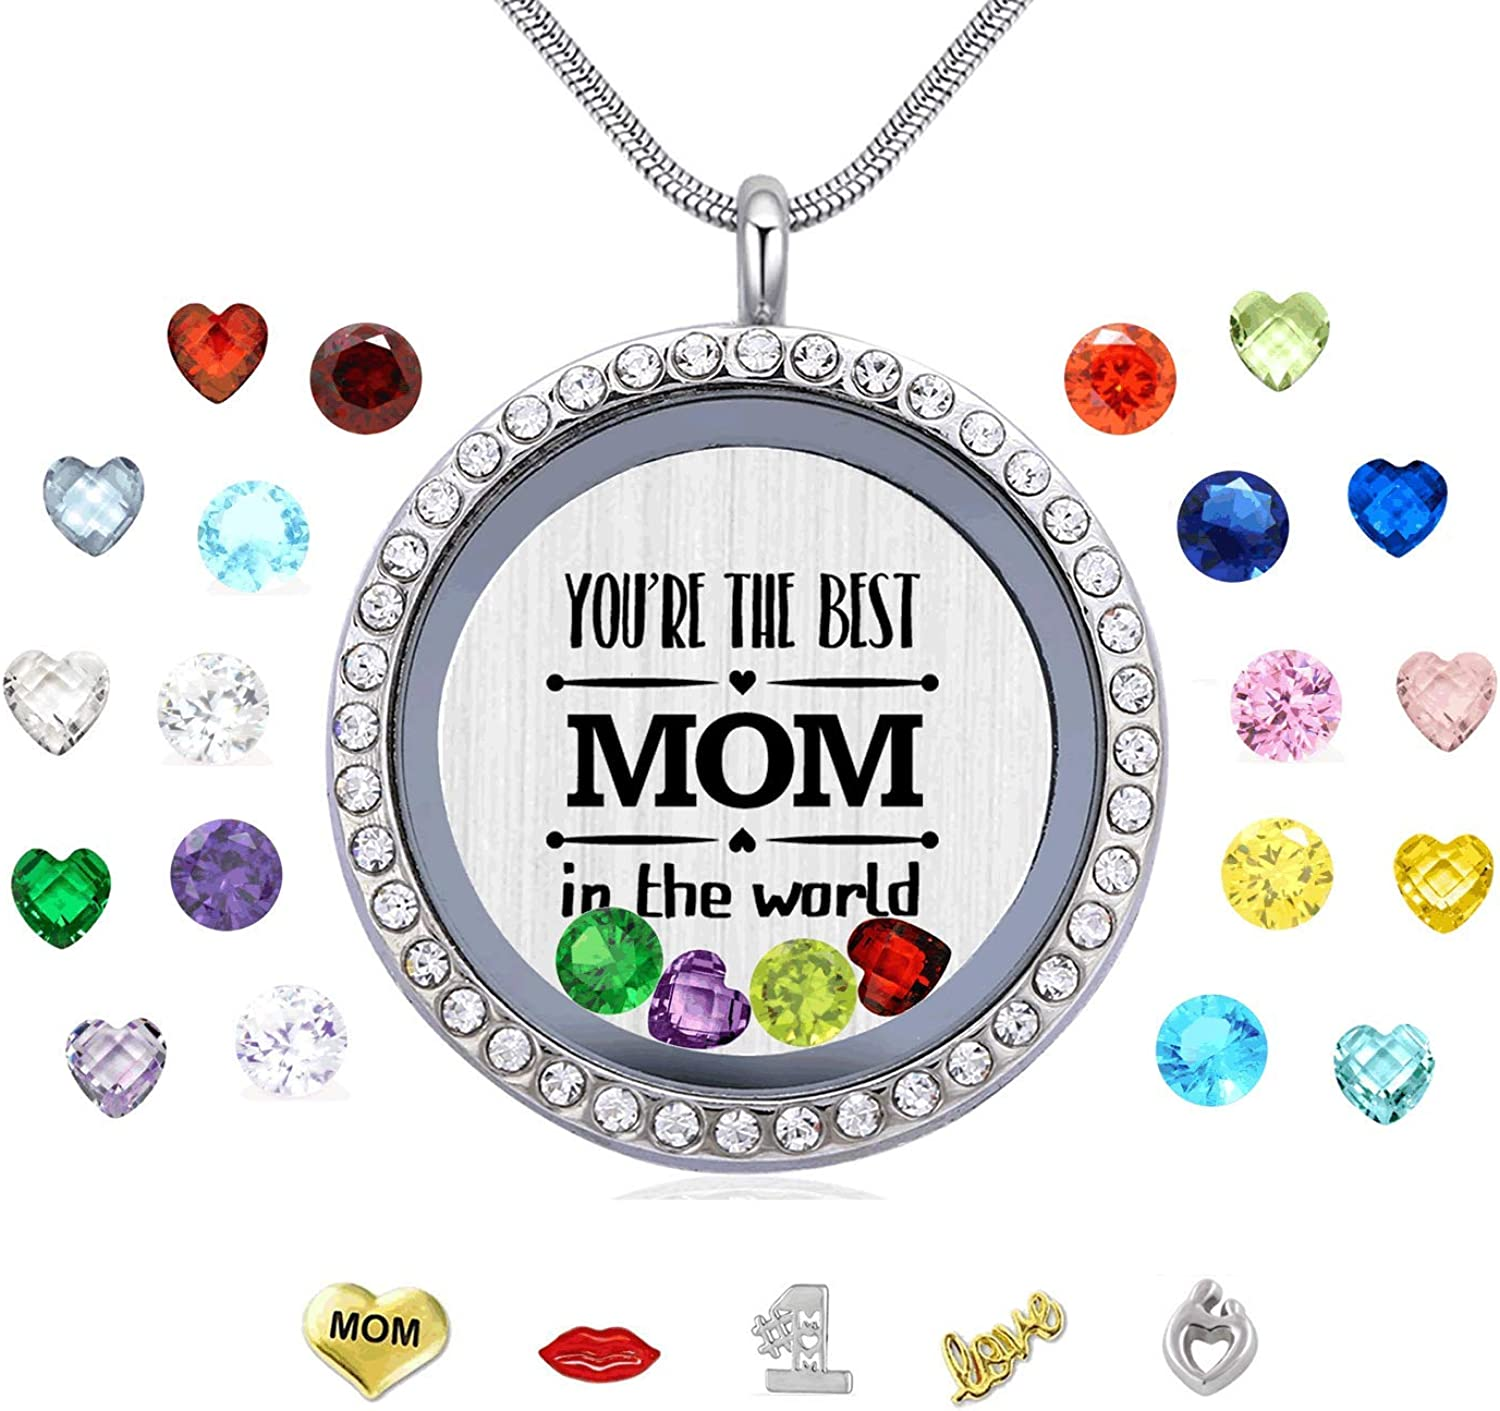 Veeshy Best Mom Mother Gift, Floating Living Memory Locket Necklace Pendant with Charms & Birthstones for Women